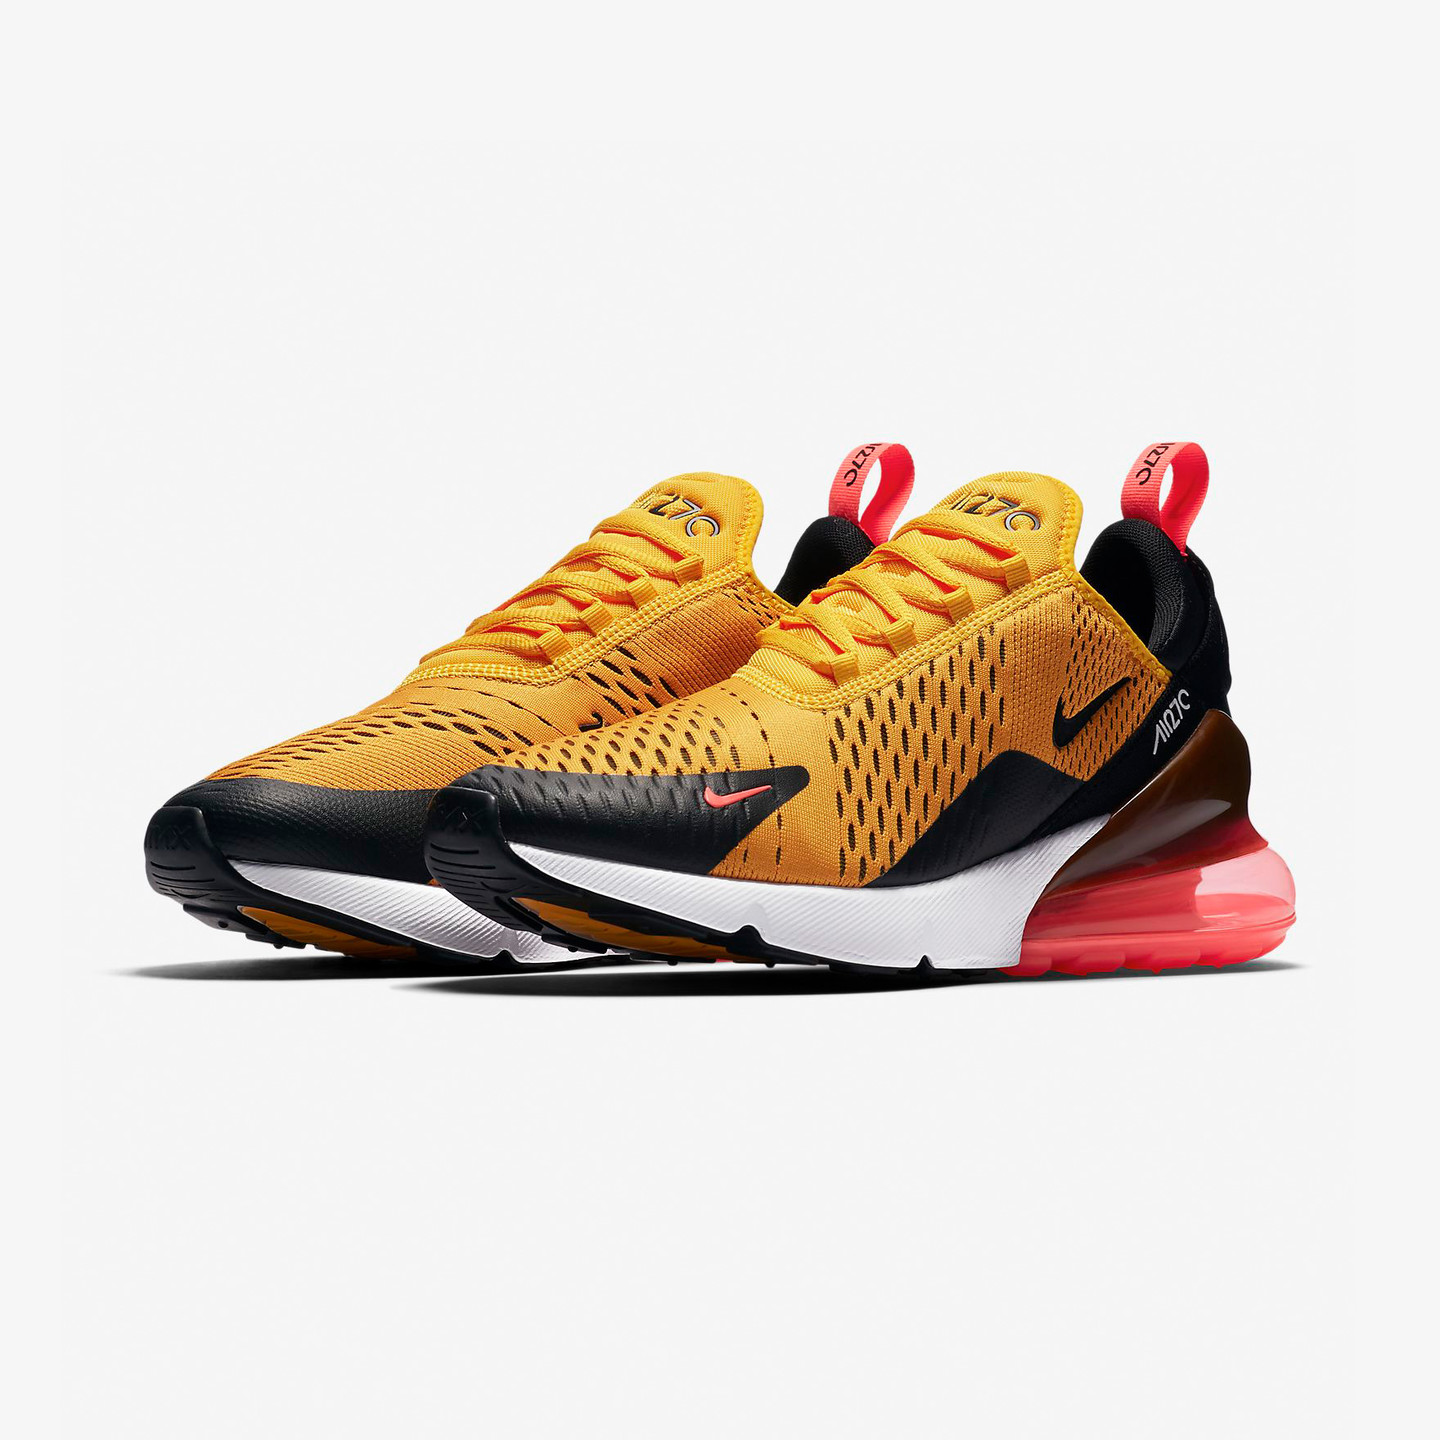 low price sale best website many fashionable discount nike air max 270 university rot schwarz weiß 9b2b0 ...